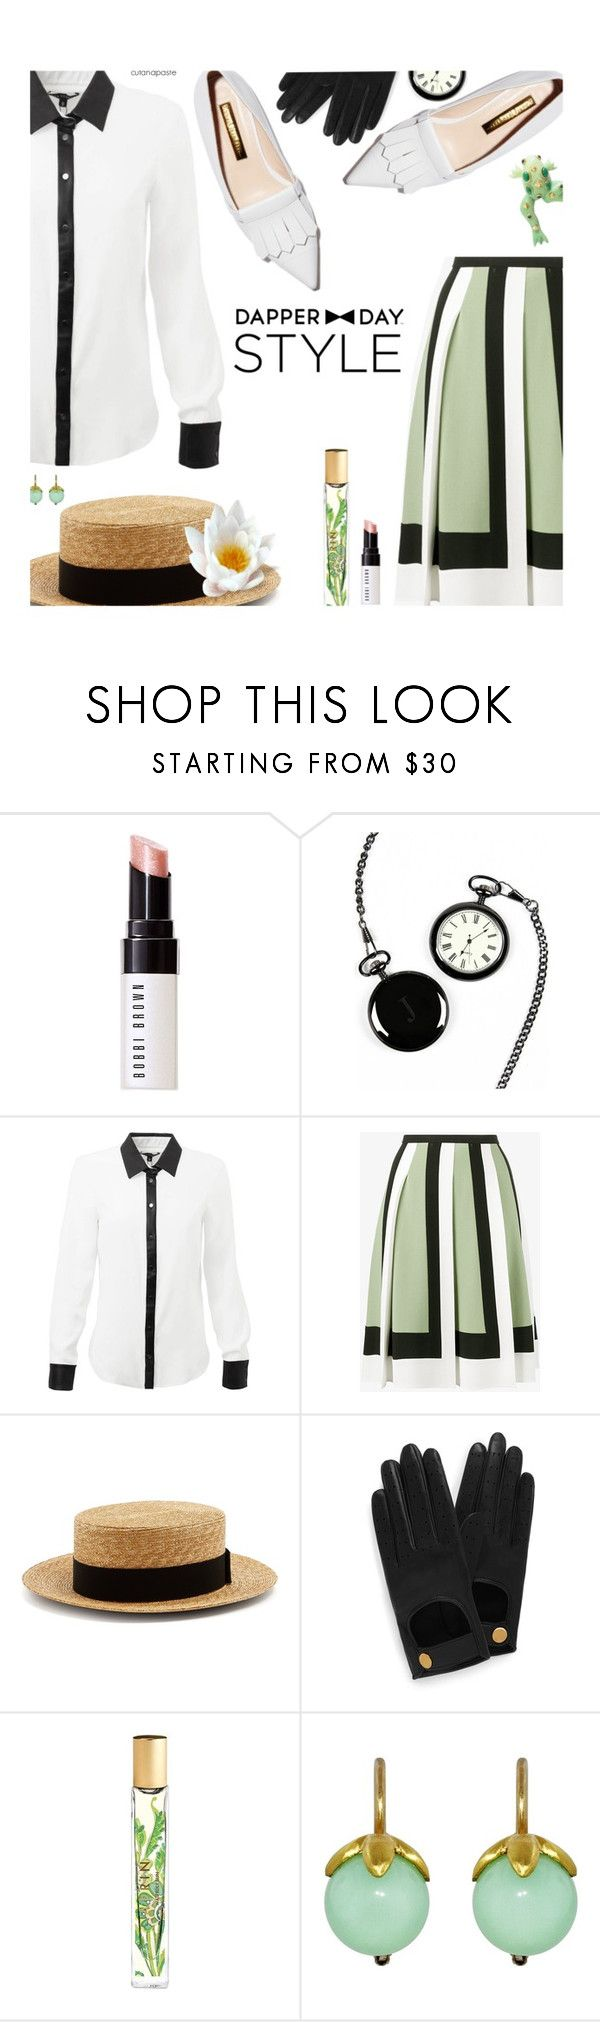 """""""Dapper Day Style"""" by cutandpaste ❤ liked on Polyvore featuring Bobbi Brown Cosmetics, Cathy's Concepts, Valentino, Prada, Mulberry, AERIN, Cathy Waterman, Replica and vintage"""